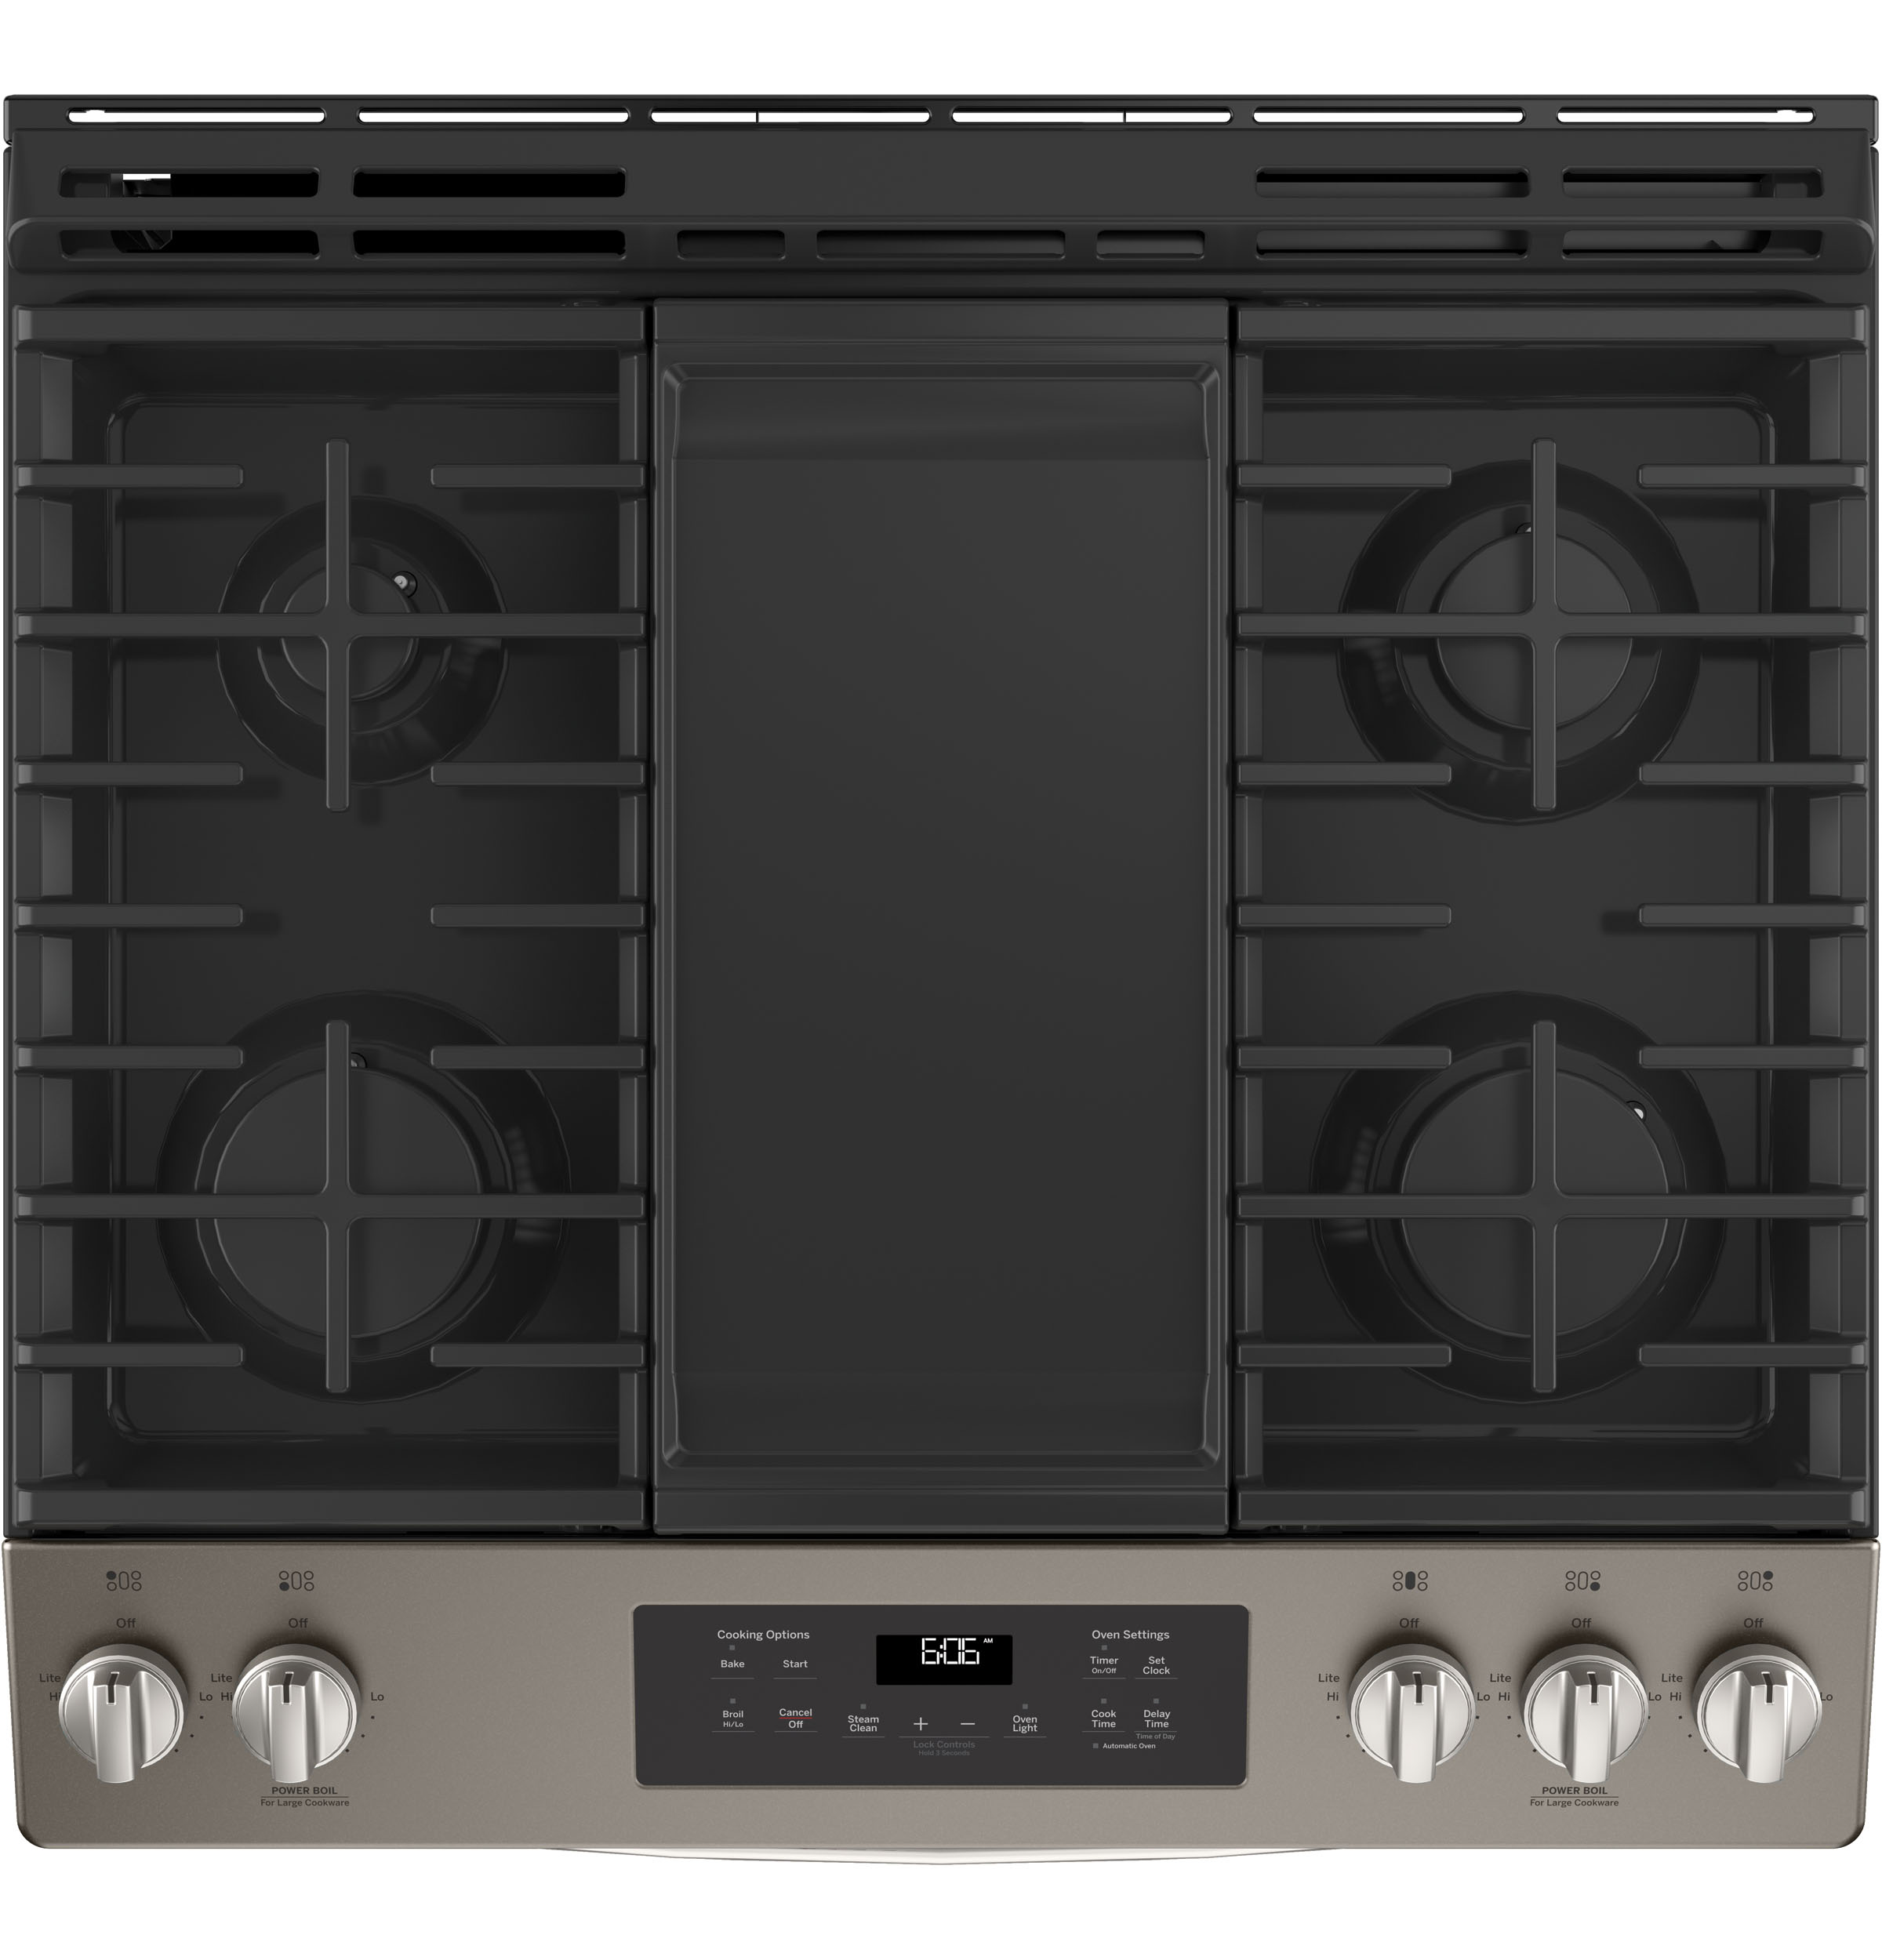 "Model: JGSS66EELES | GE GE® 30"" Slide-In Front Control Gas Range"